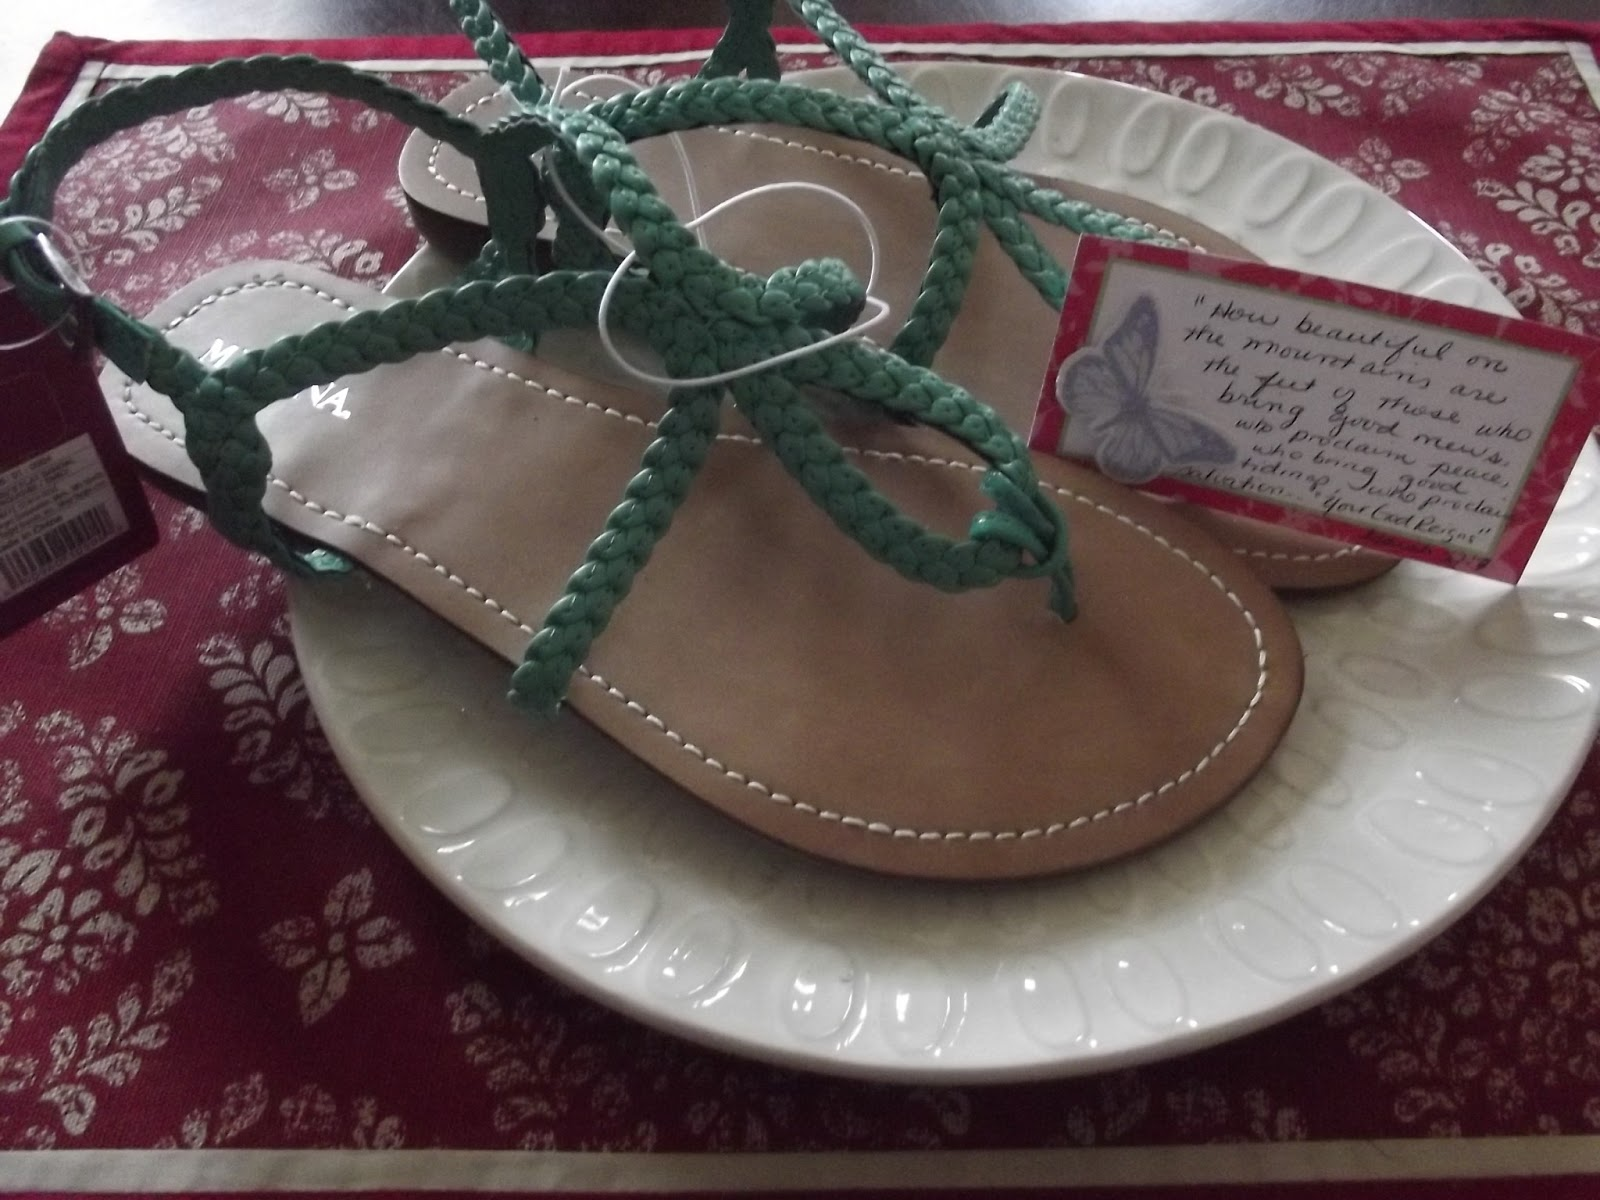 13 And My Last Gift Was A Pair Of Sandals That She Really Wanted I Tied It In With The Following Scripture